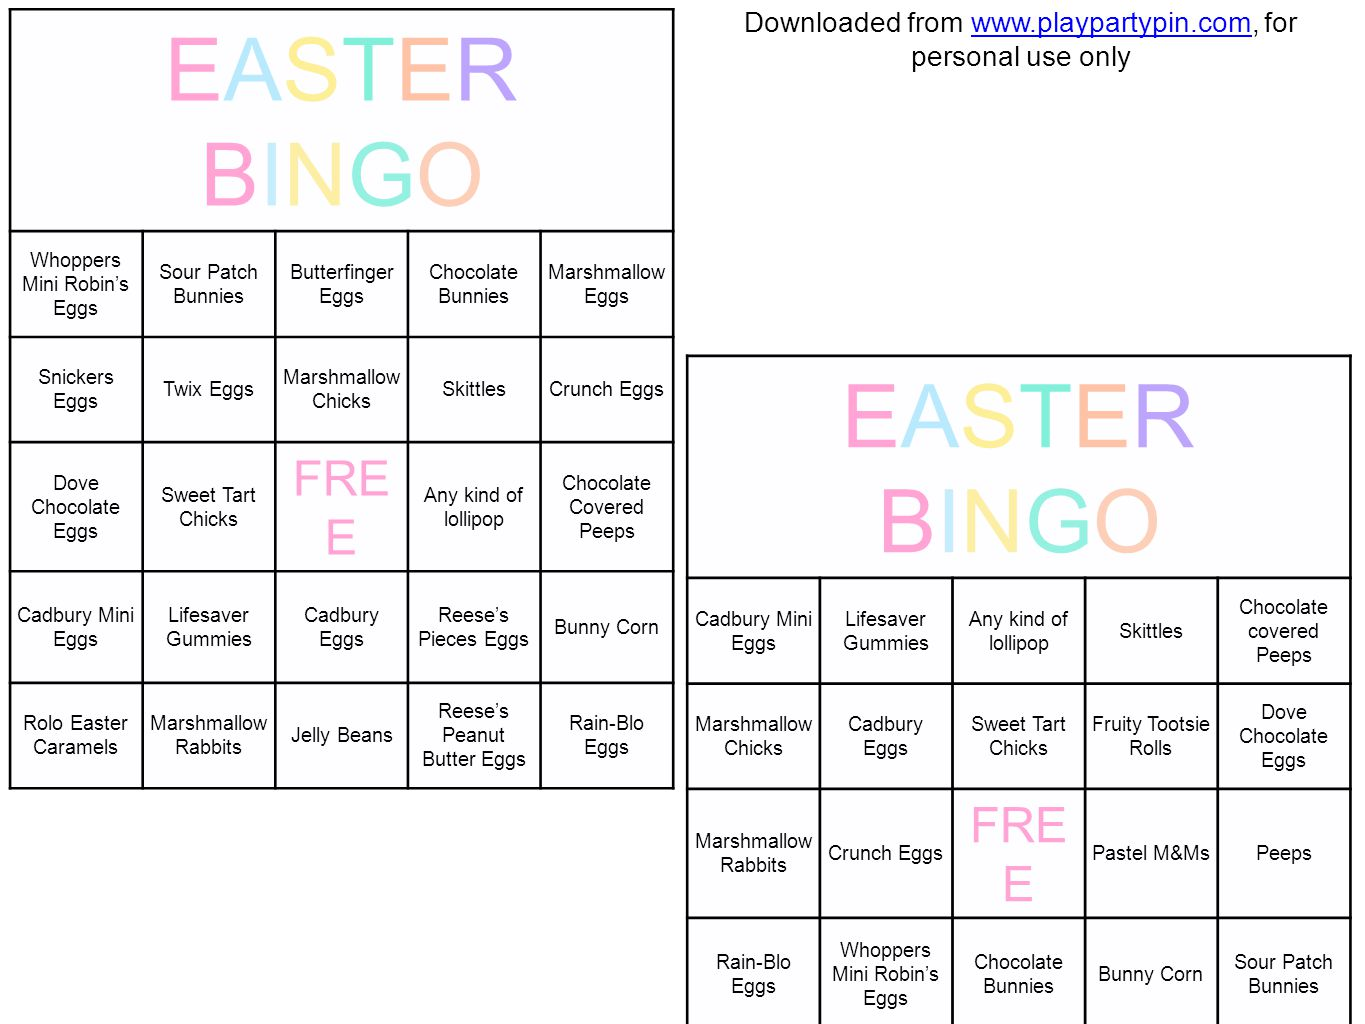 EASTERBINGOEASTERBINGO Whoppers Mini Robin's Eggs Sour Patch Bunnies Butterfinger Eggs Chocolate Bunnies Marshmallow Eggs Snickers Eggs Twix Eggs Marshmallow Chicks SkittlesCrunch Eggs Dove Chocolate Eggs Sweet Tart Chicks FRE E Any kind of lollipop Chocolate Covered Peeps Cadbury Mini Eggs Lifesaver Gummies Cadbury Eggs Reese's Pieces Eggs Bunny Corn Rolo Easter Caramels Marshmallow Rabbits Jelly Beans Reese's Peanut Butter Eggs Rain-Blo Eggs EASTERBINGOEASTERBINGO Cadbury Mini Eggs Lifesaver Gummies Any kind of lollipop Skittles Chocolate covered Peeps Marshmallow Chicks Cadbury Eggs Sweet Tart Chicks Fruity Tootsie Rolls Dove Chocolate Eggs Marshmallow Rabbits Crunch Eggs FRE E Pastel M&MsPeeps Rain-Blo Eggs Whoppers Mini Robin's Eggs Chocolate Bunnies Bunny Corn Sour Patch Bunnies Hershey's Kisses Butterfinger Eggs Jelly BeansSnickers Marshmallow Eggs Downloaded from www.playpartypin.com, for personal use onlywww.playpartypin.com